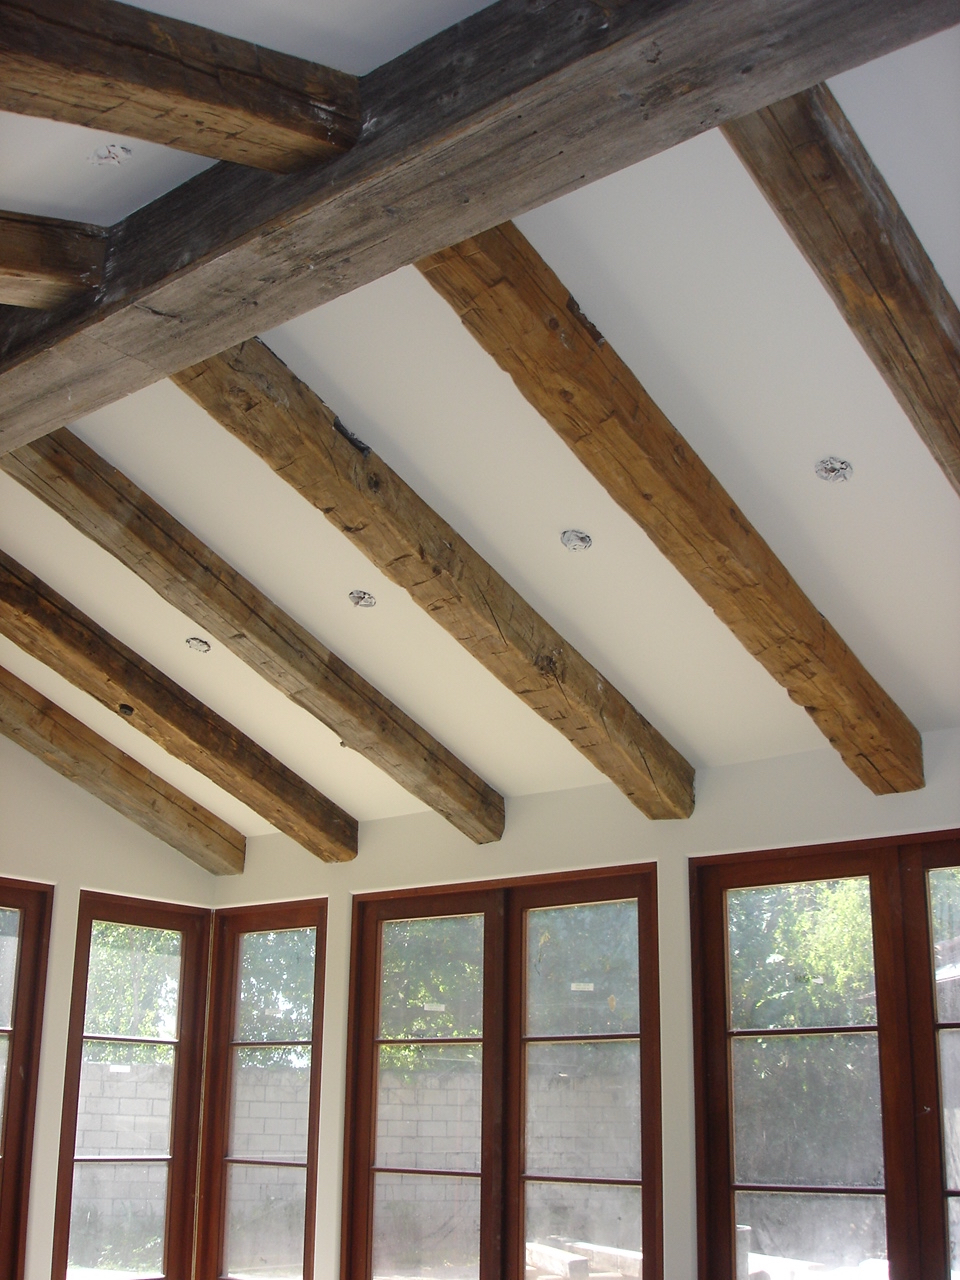 6 RECLAIMED WOOD BEAM COVER.jpg